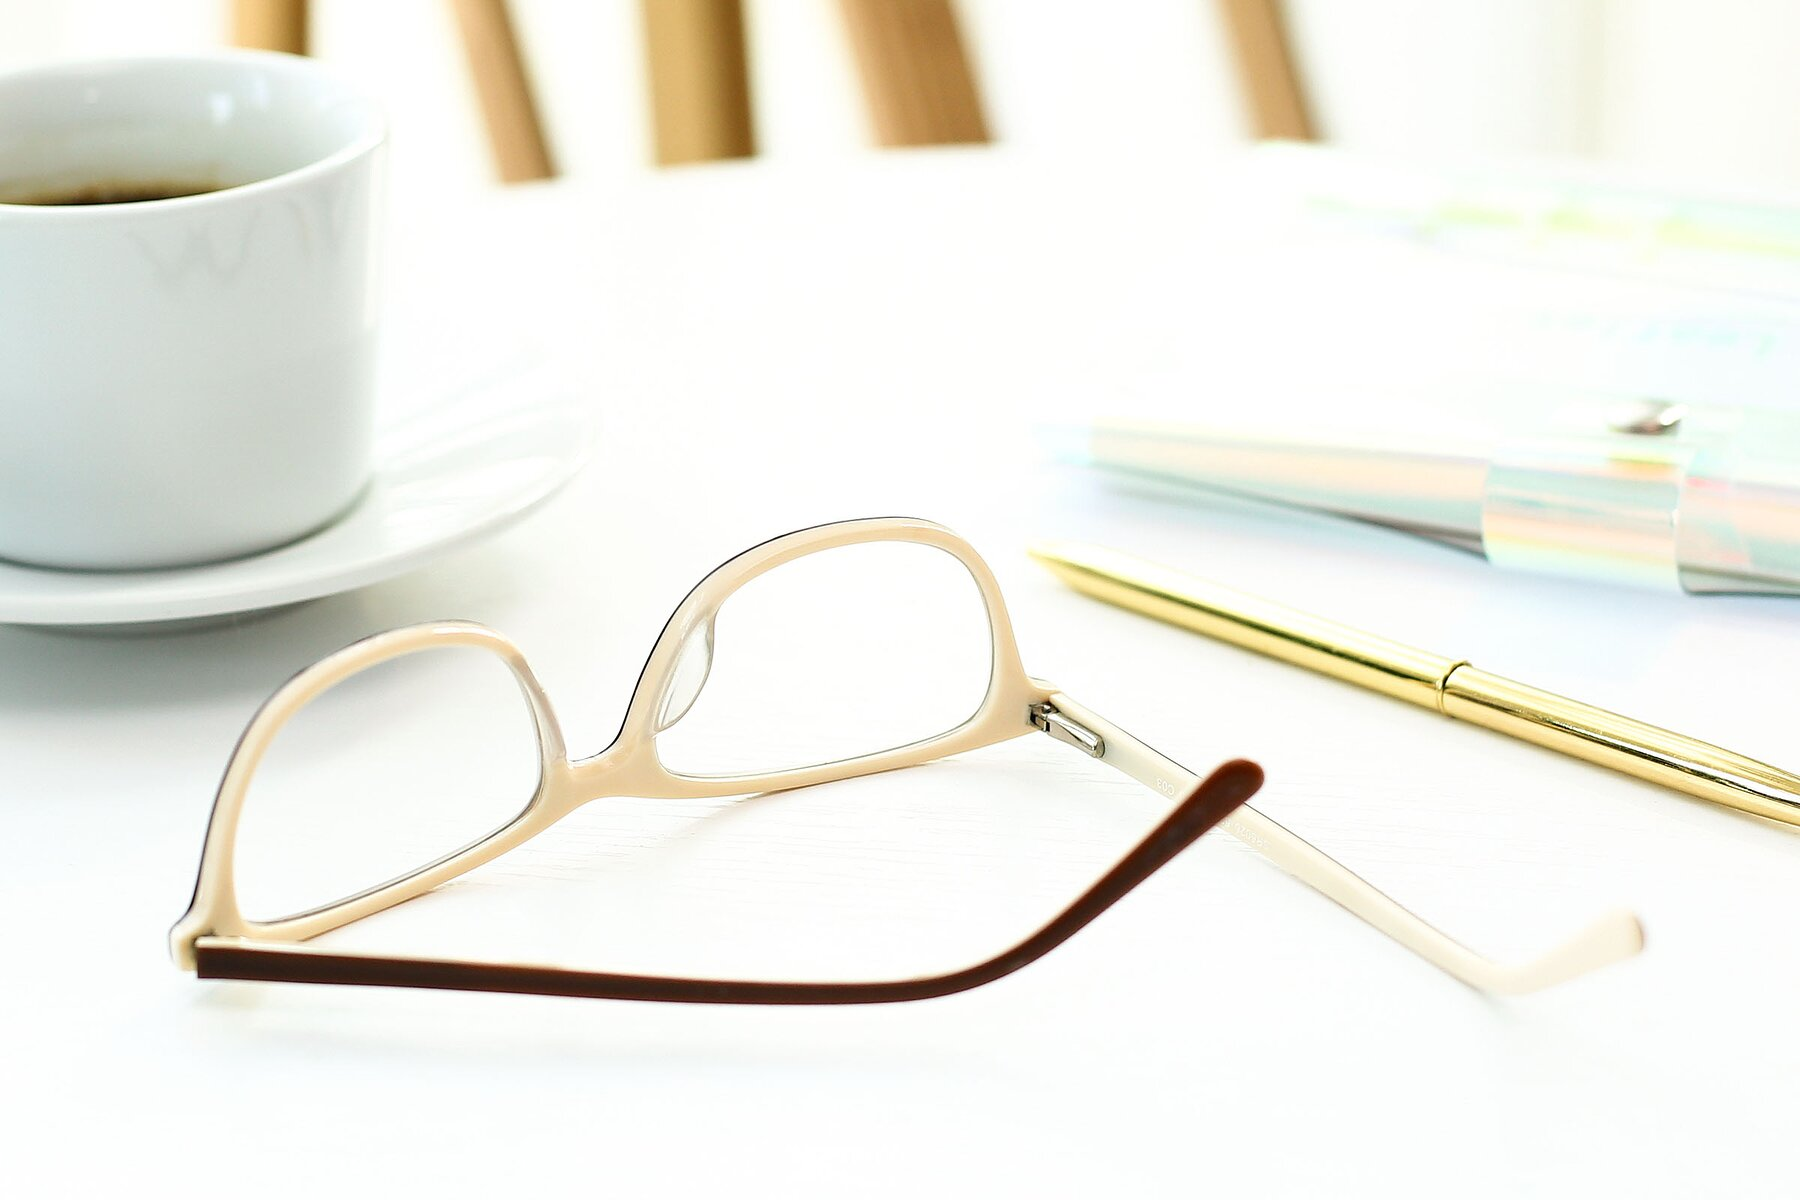 Lifestyle photography #3 of SR6026 in Coffee with Clear Eyeglass Lenses